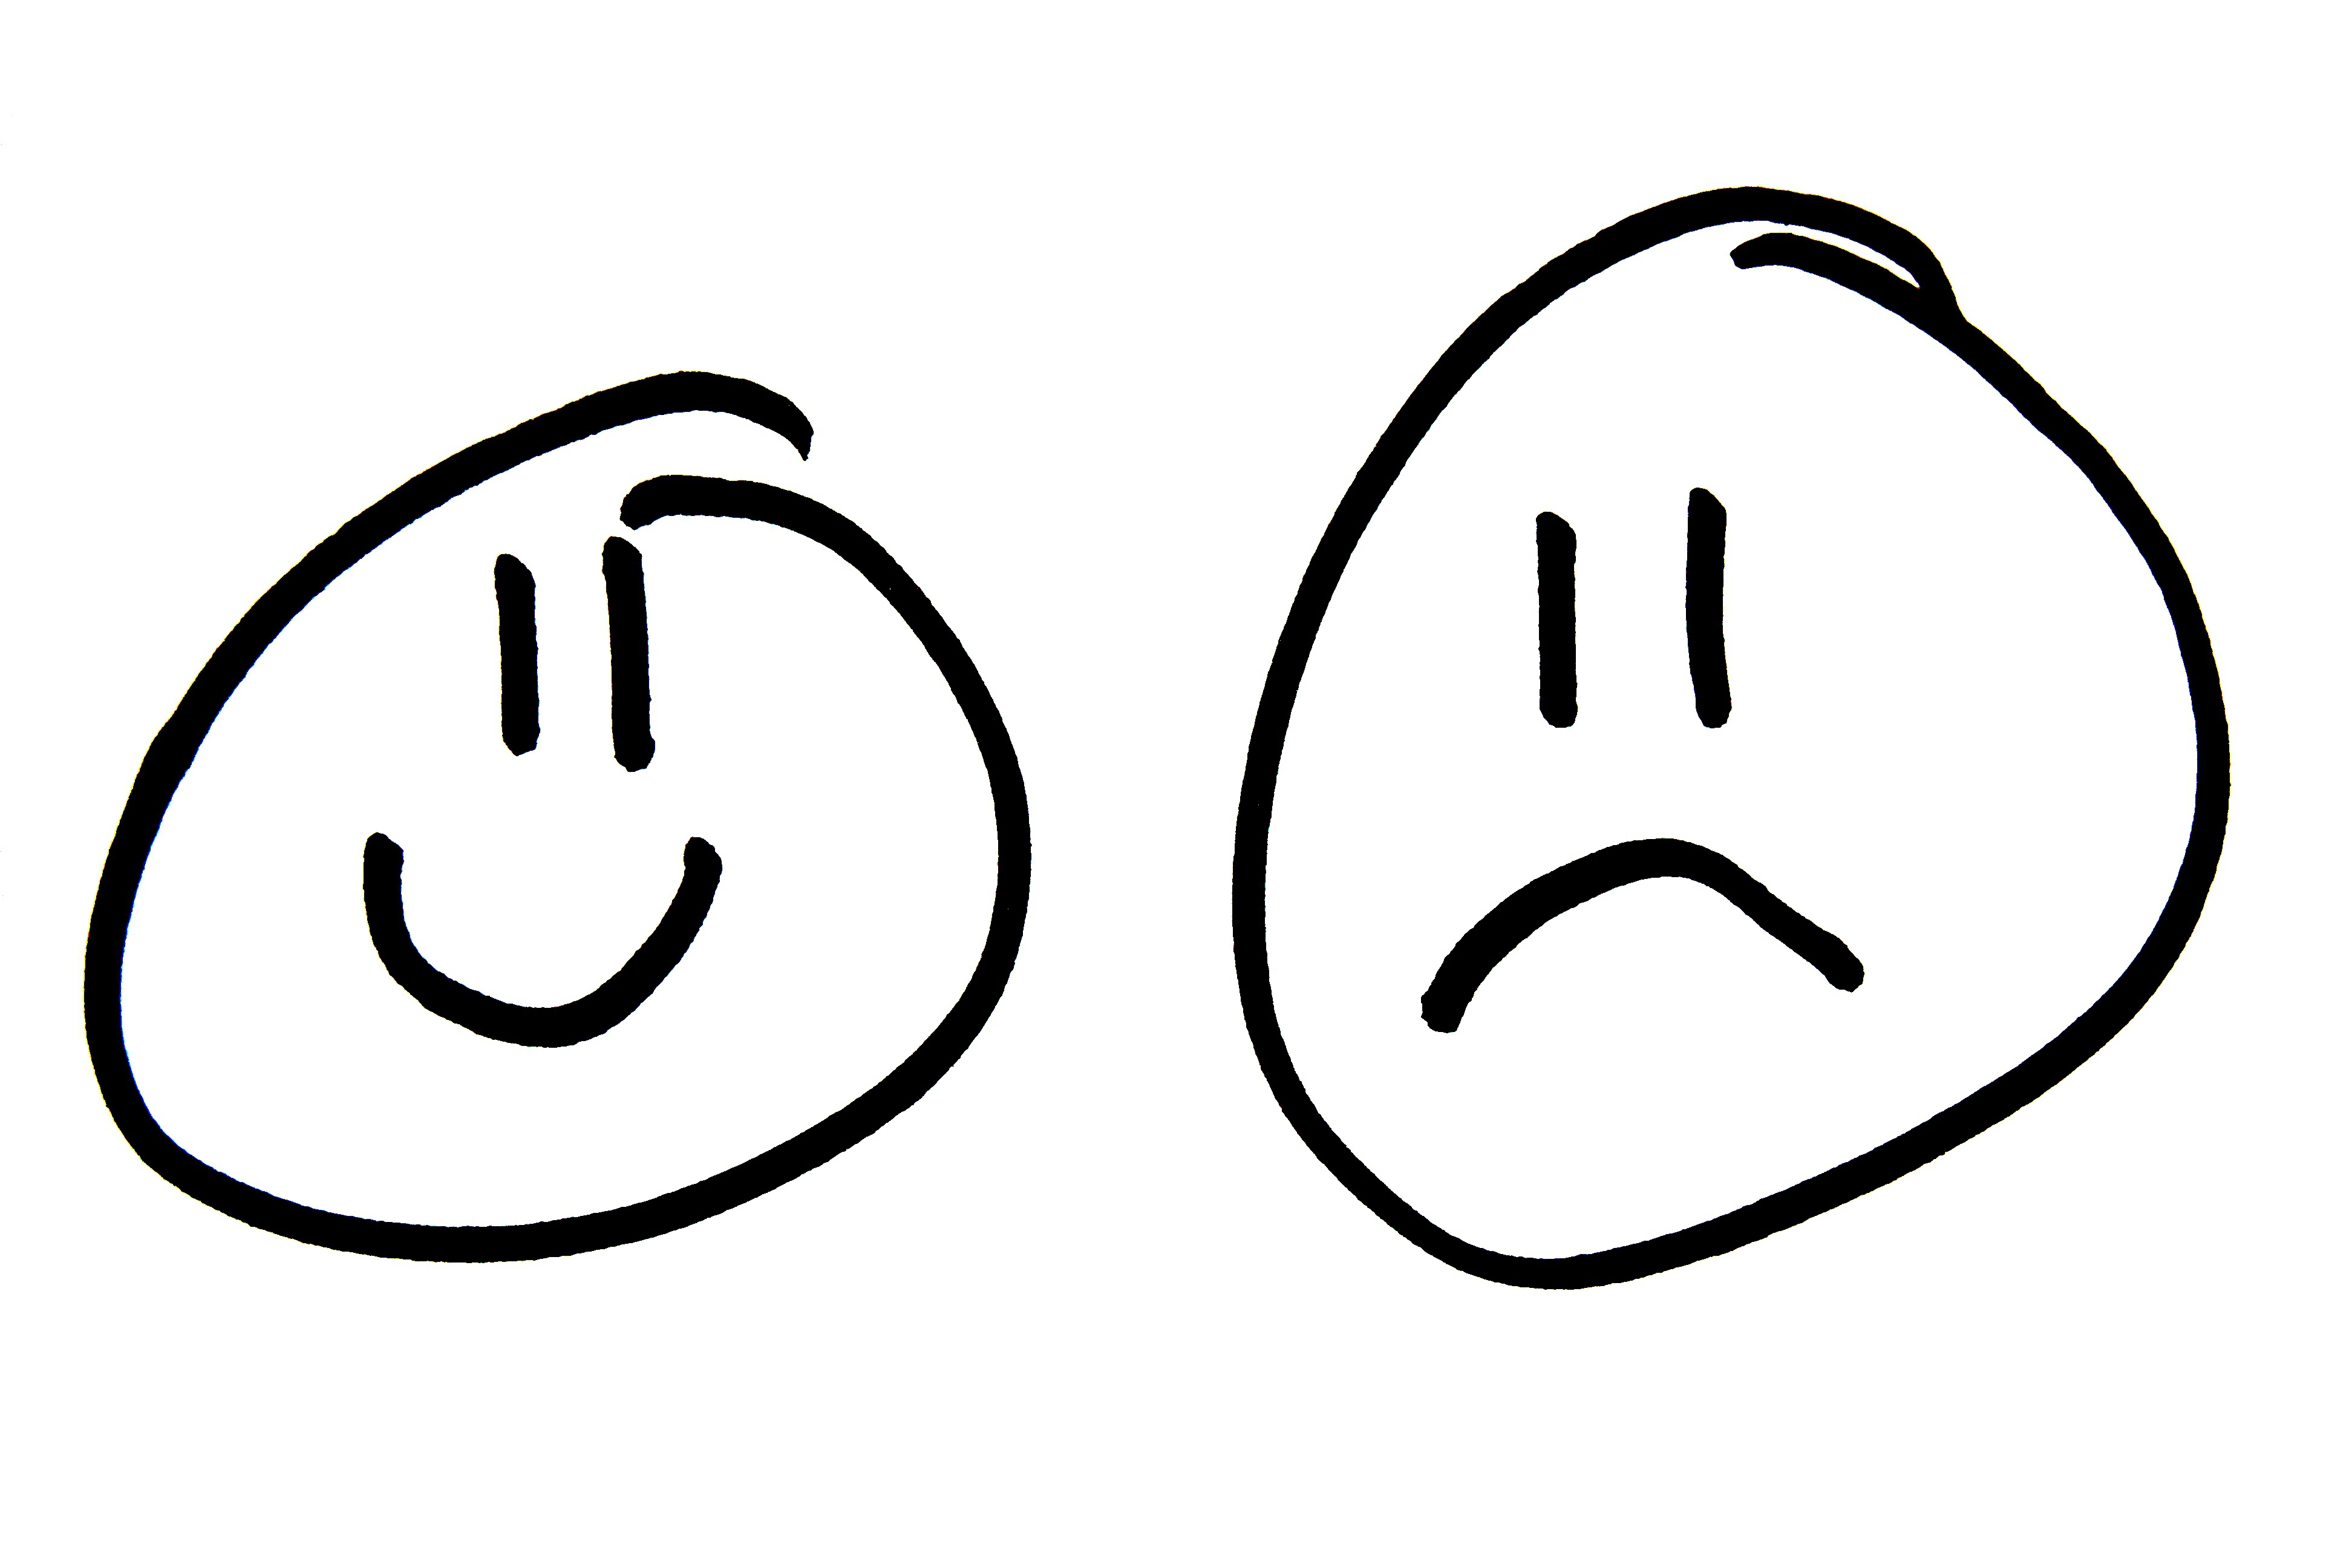 3888x2592 Smiley Face Clip Art Thumbs Up